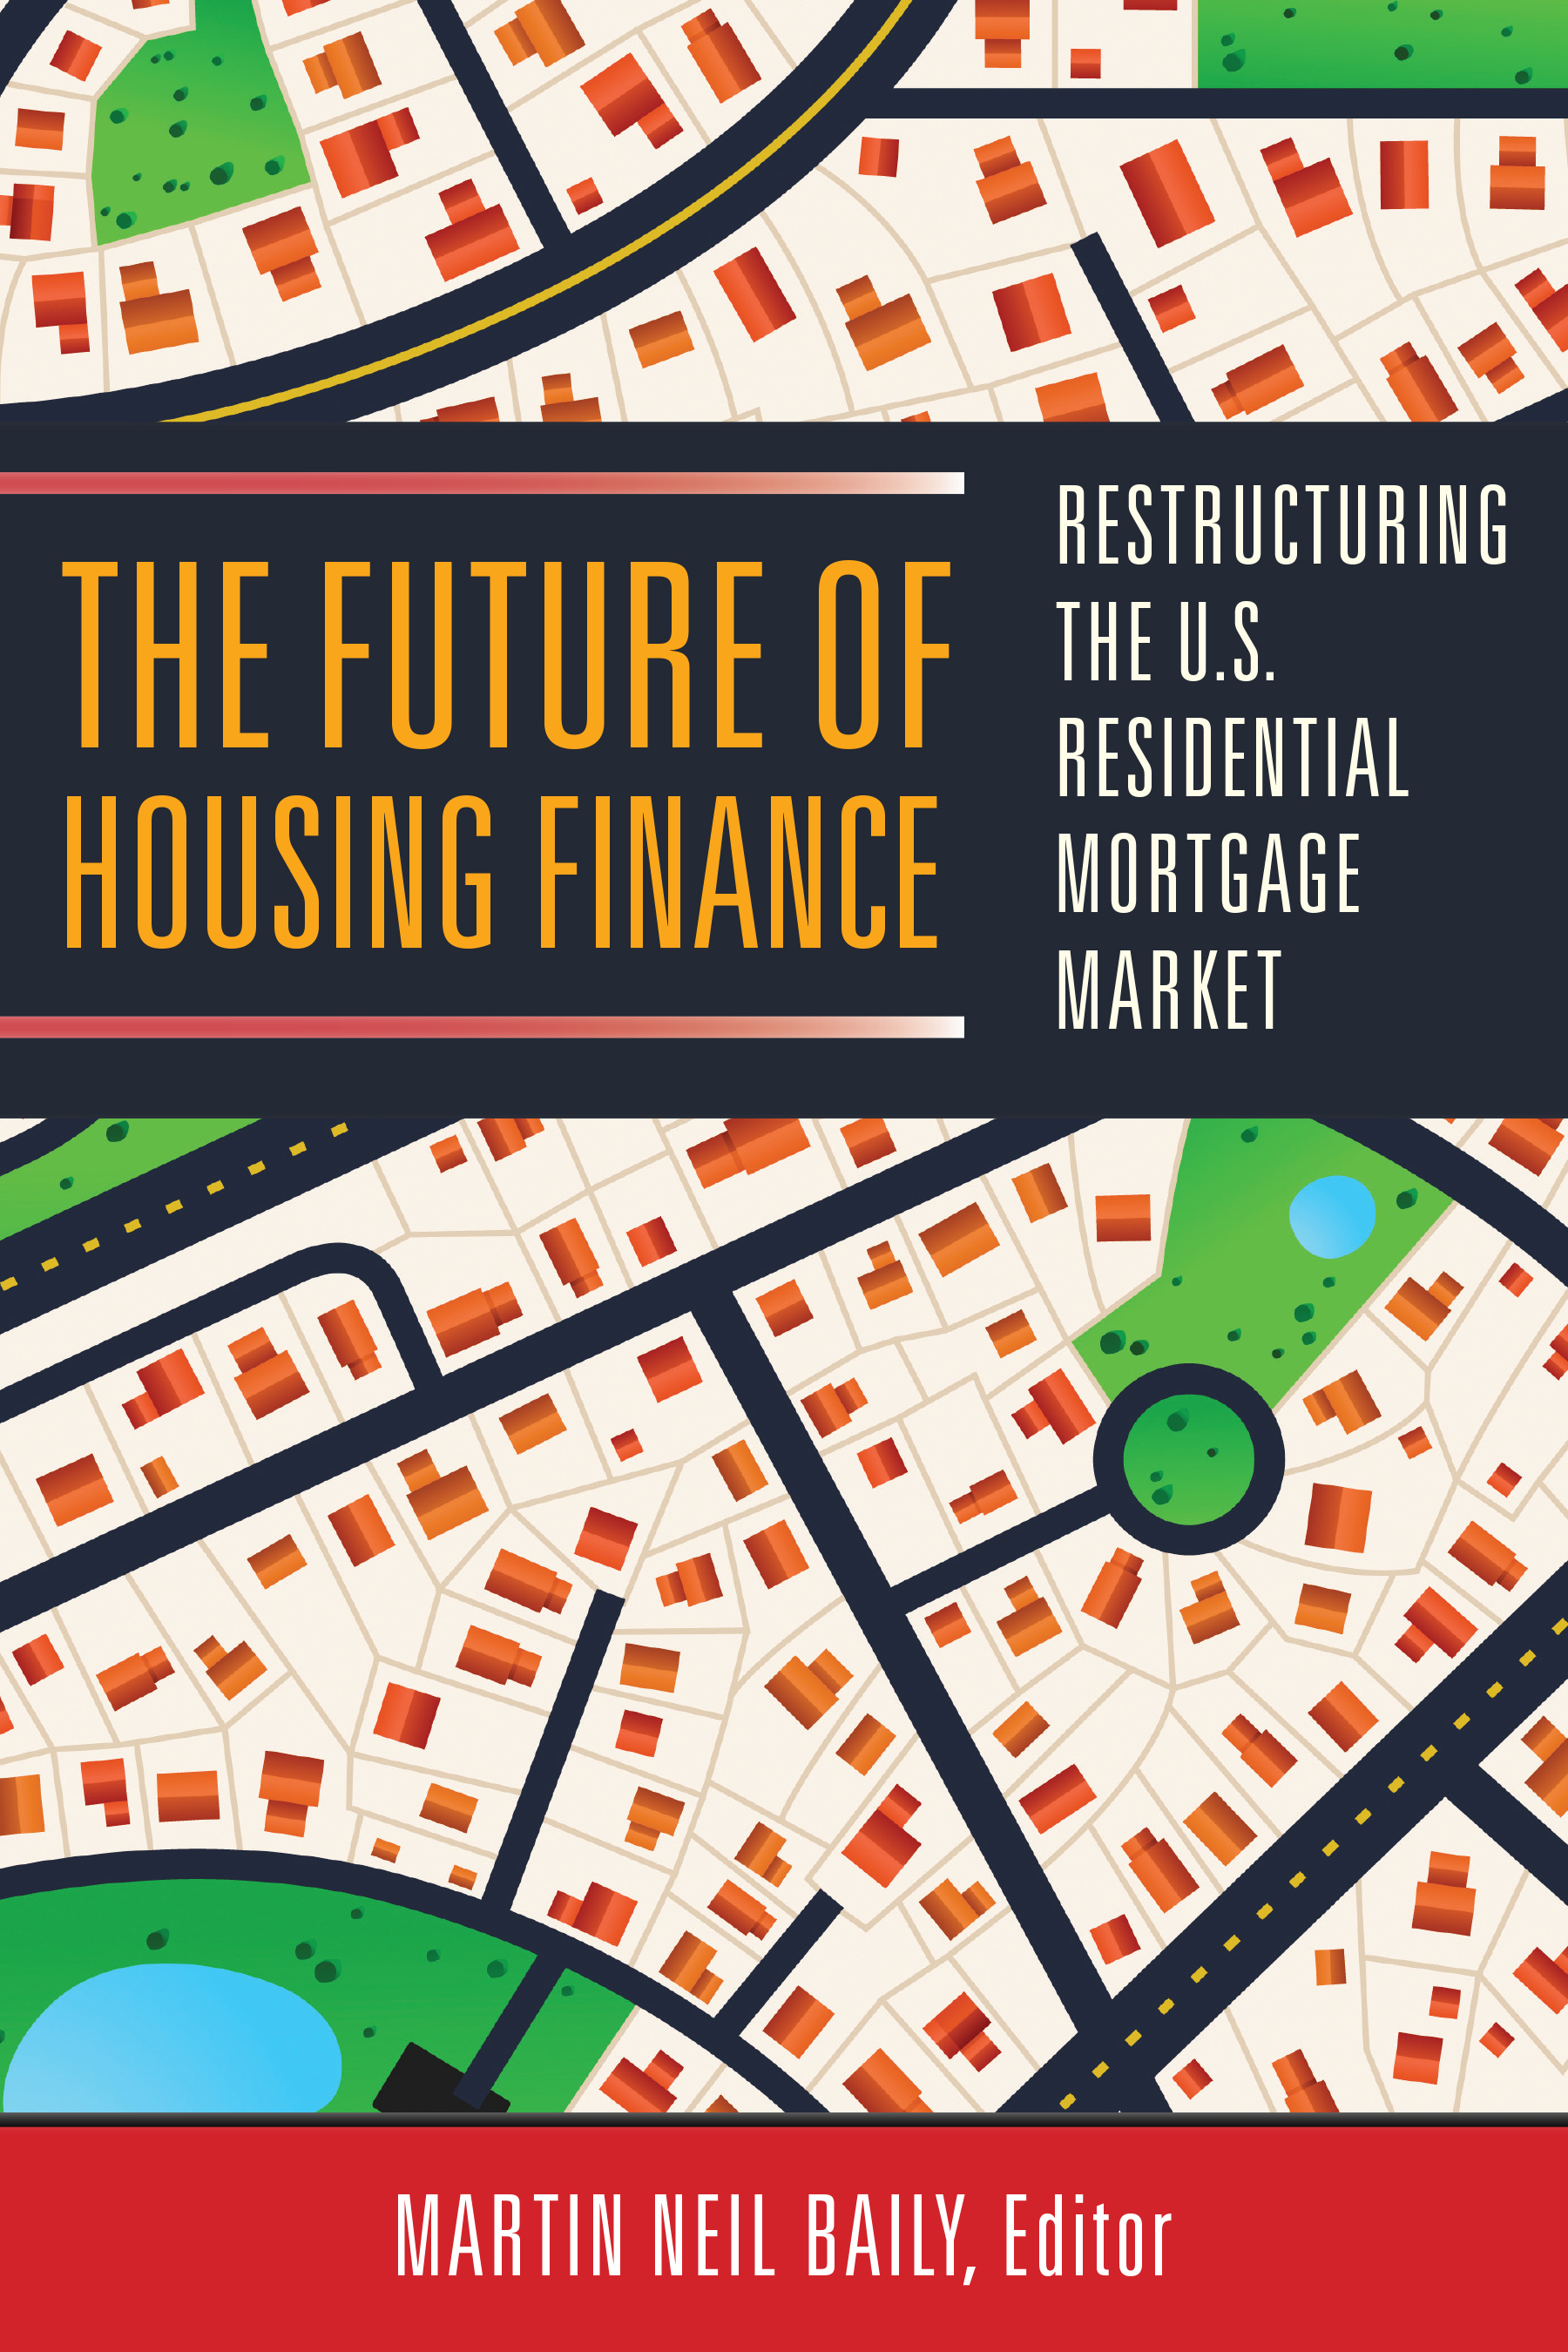 The Future of Housing Finance